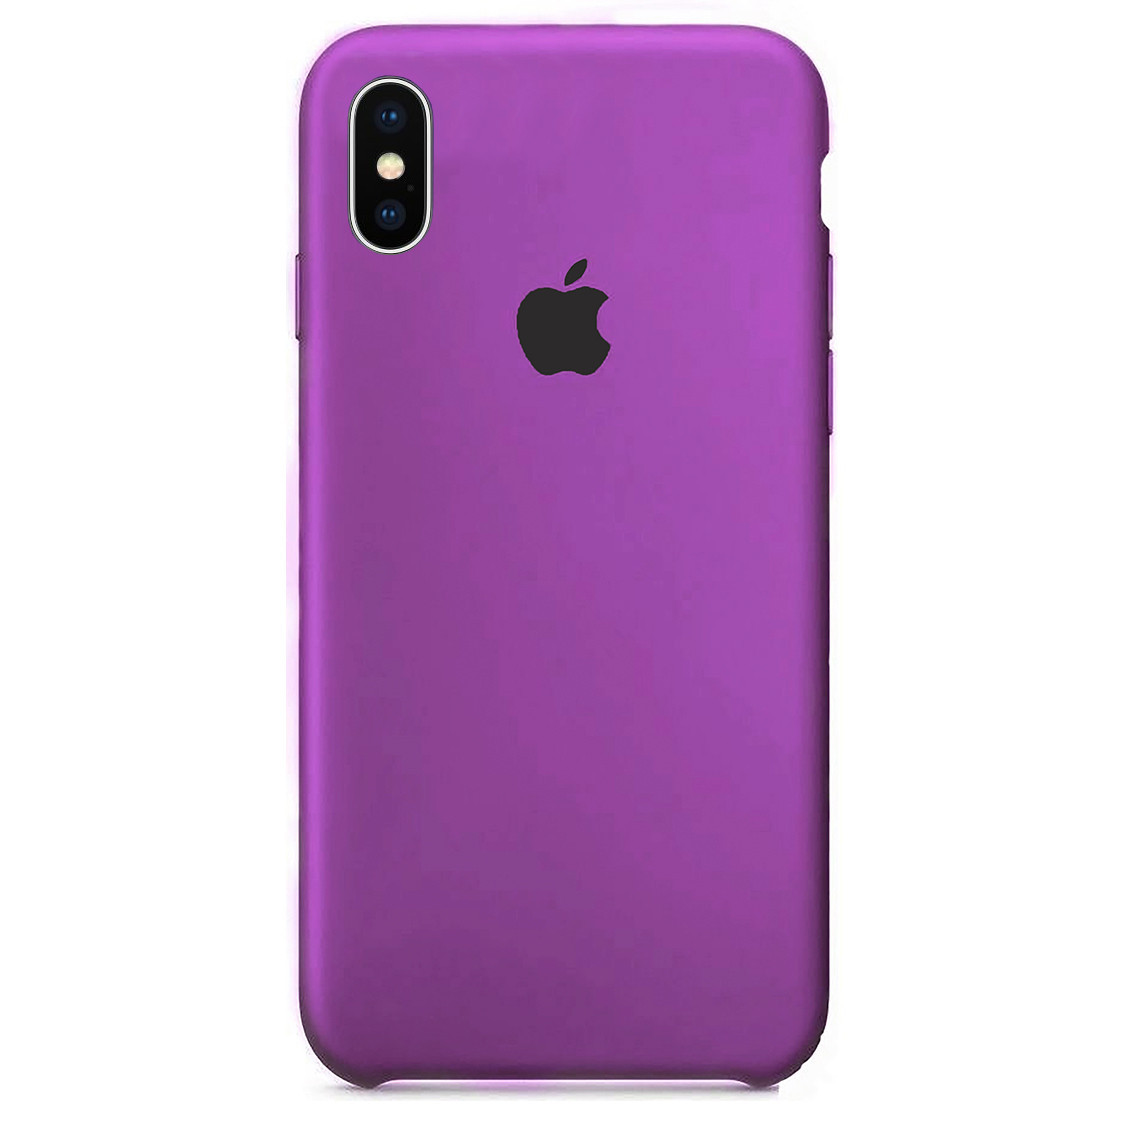 Чехол накладка xCase для iPhone XS Max Silicone Case Purple